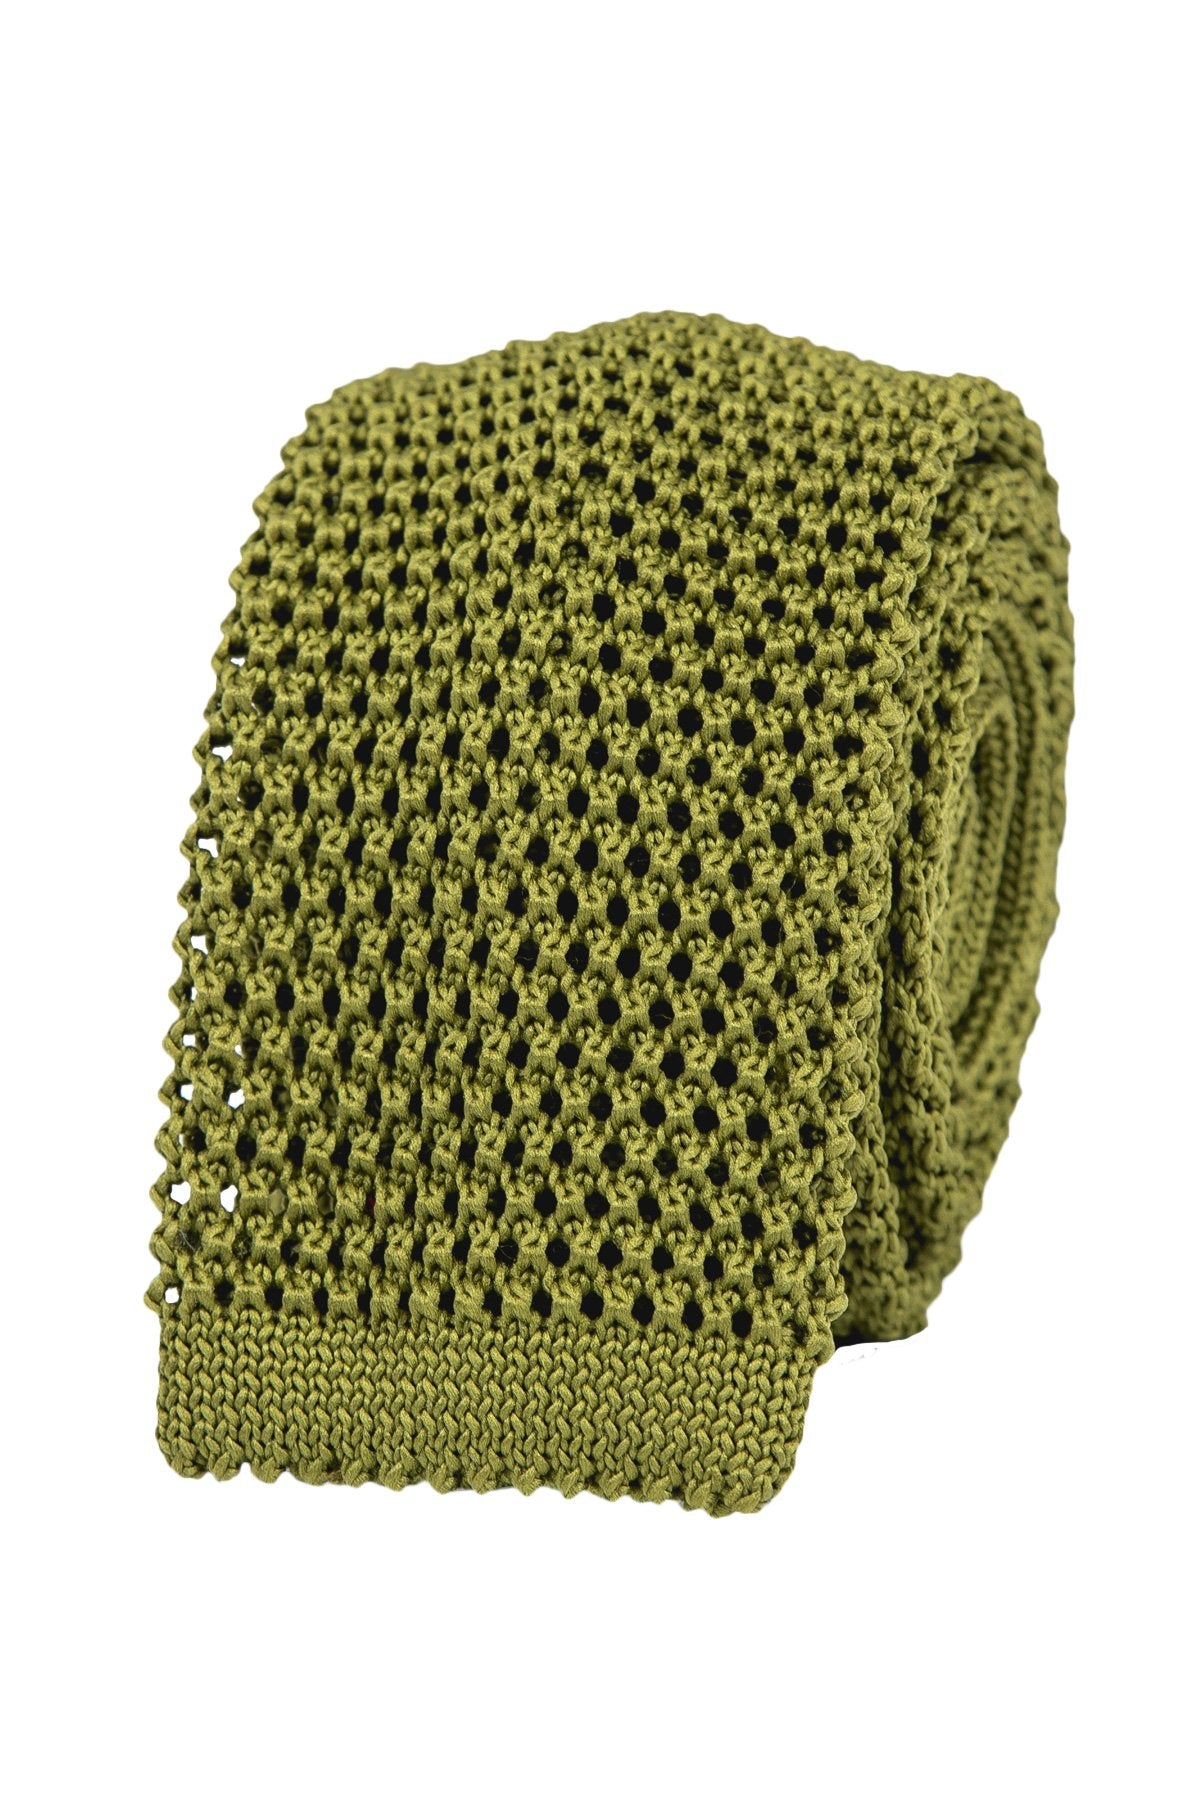 The Solid Olive-Green Knit